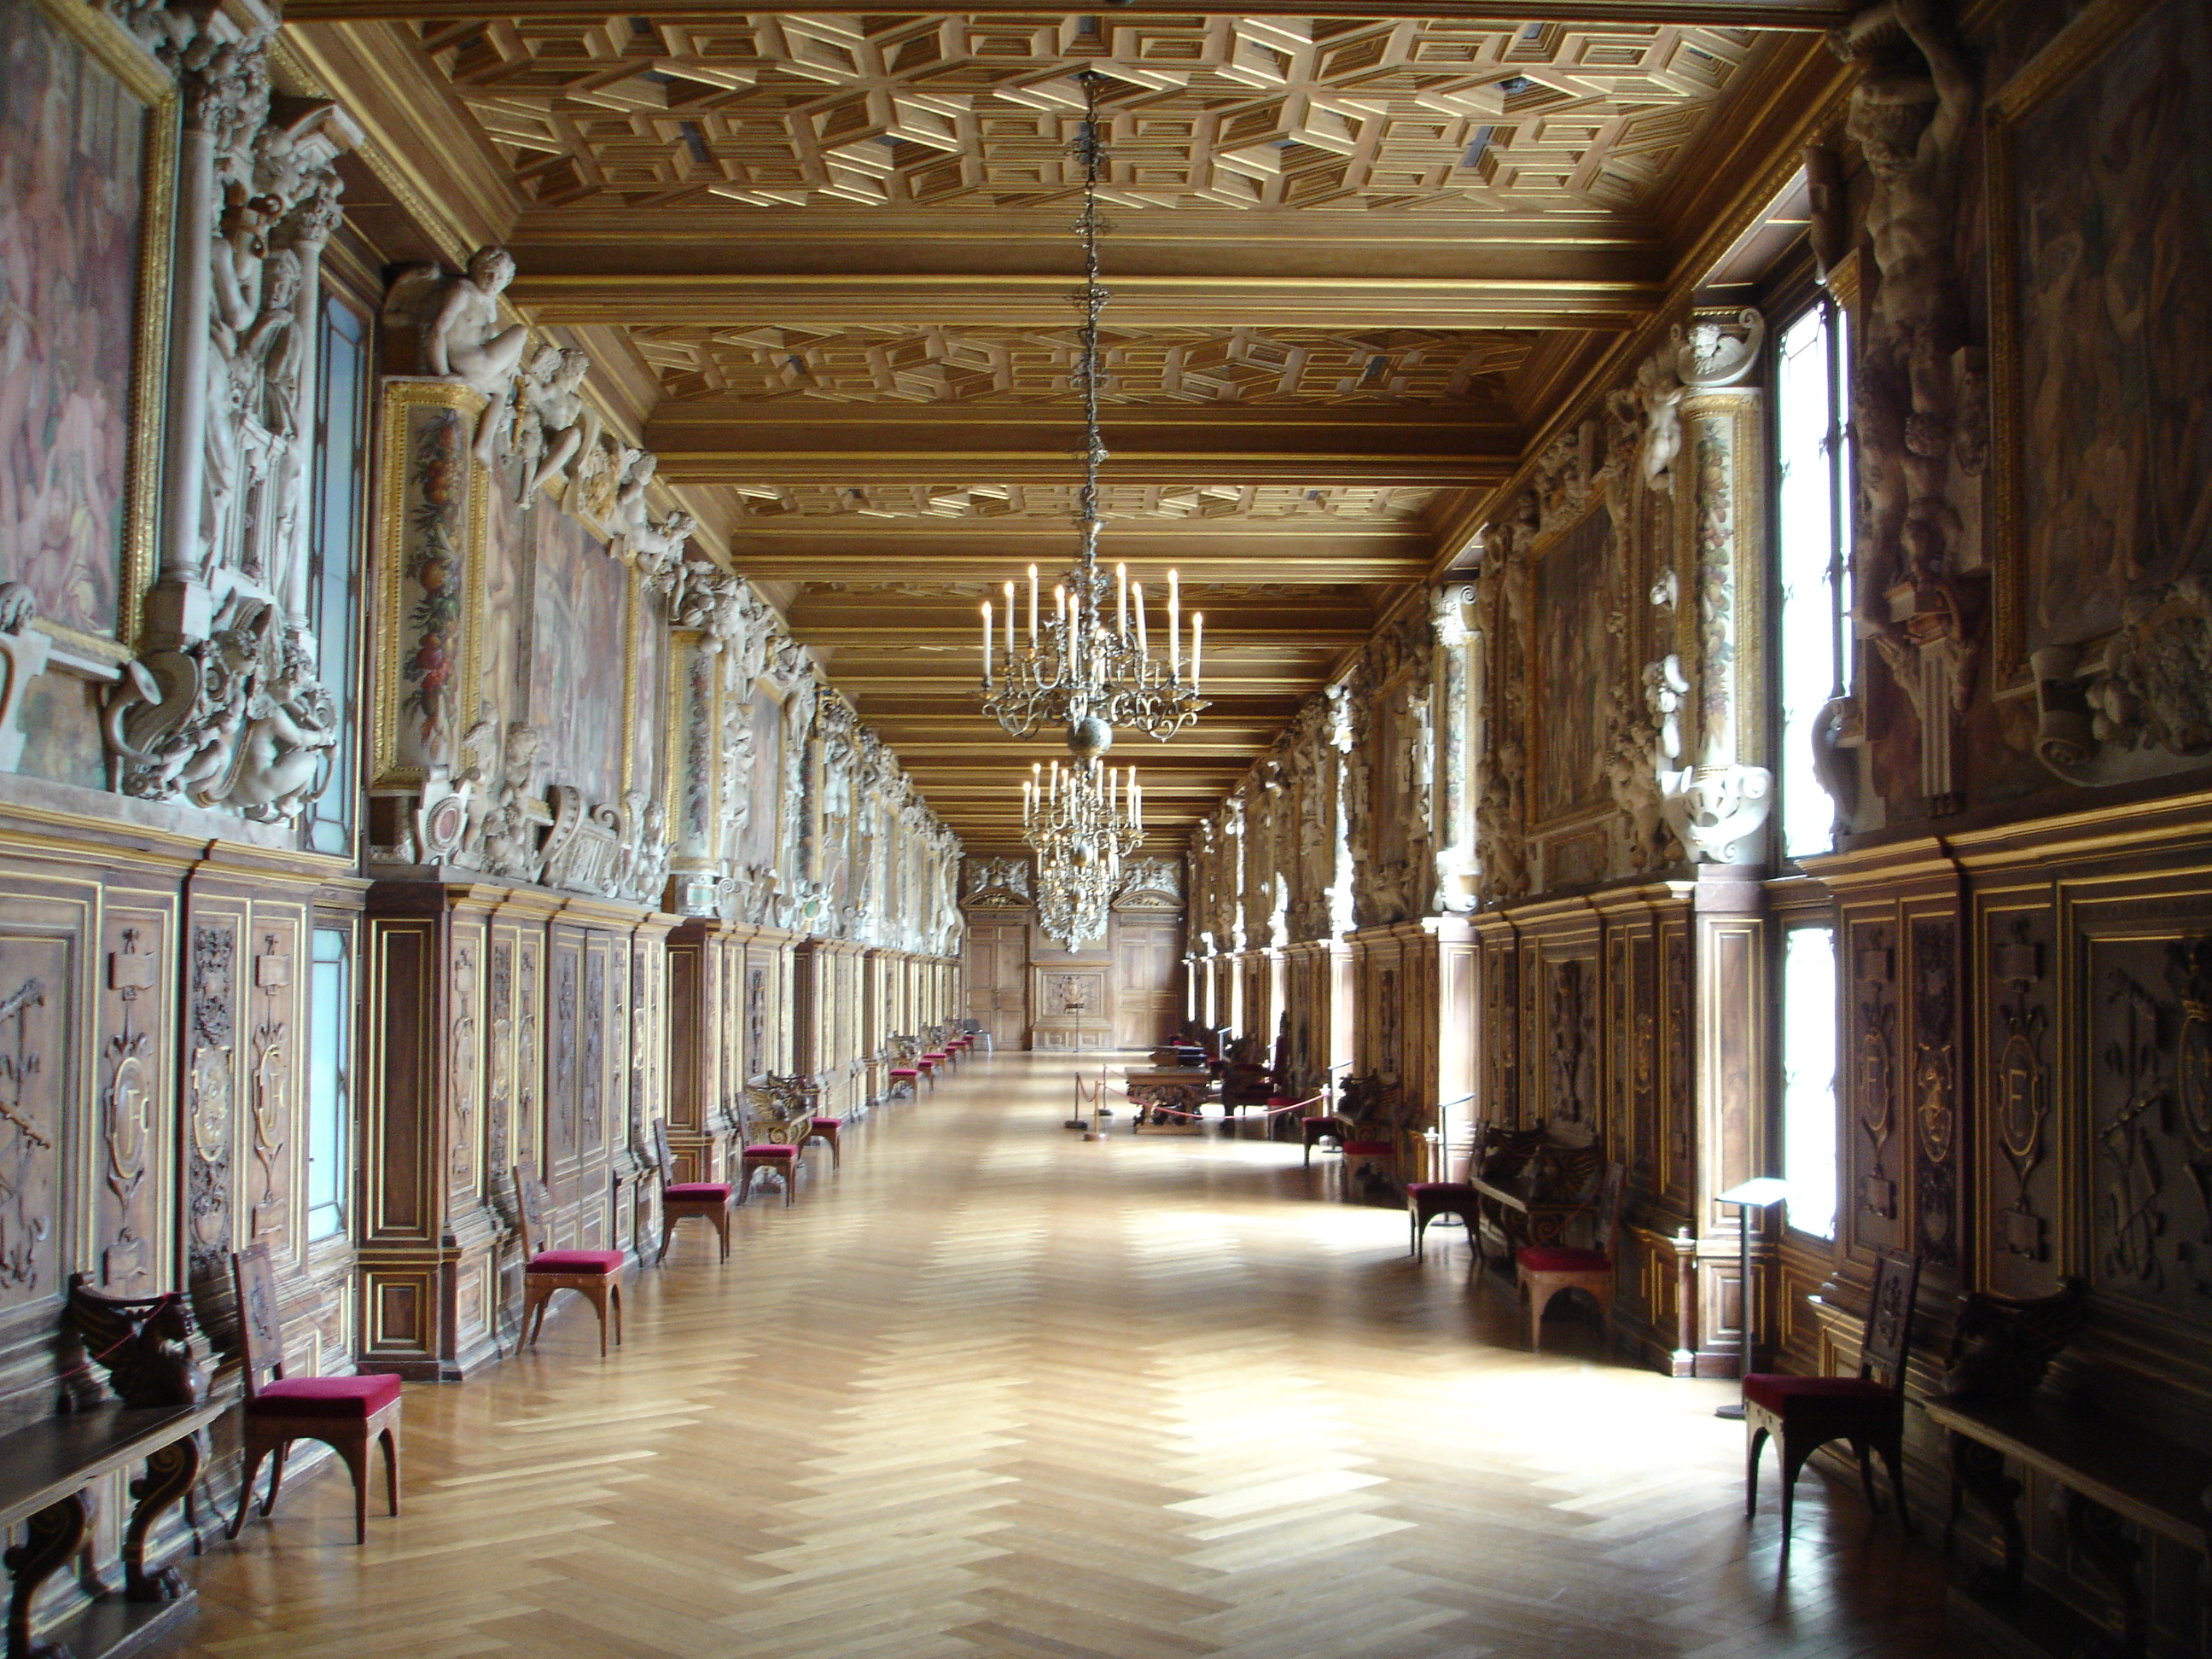 Galerie fran ois ier ch teau de fontainebleau for Interieur french